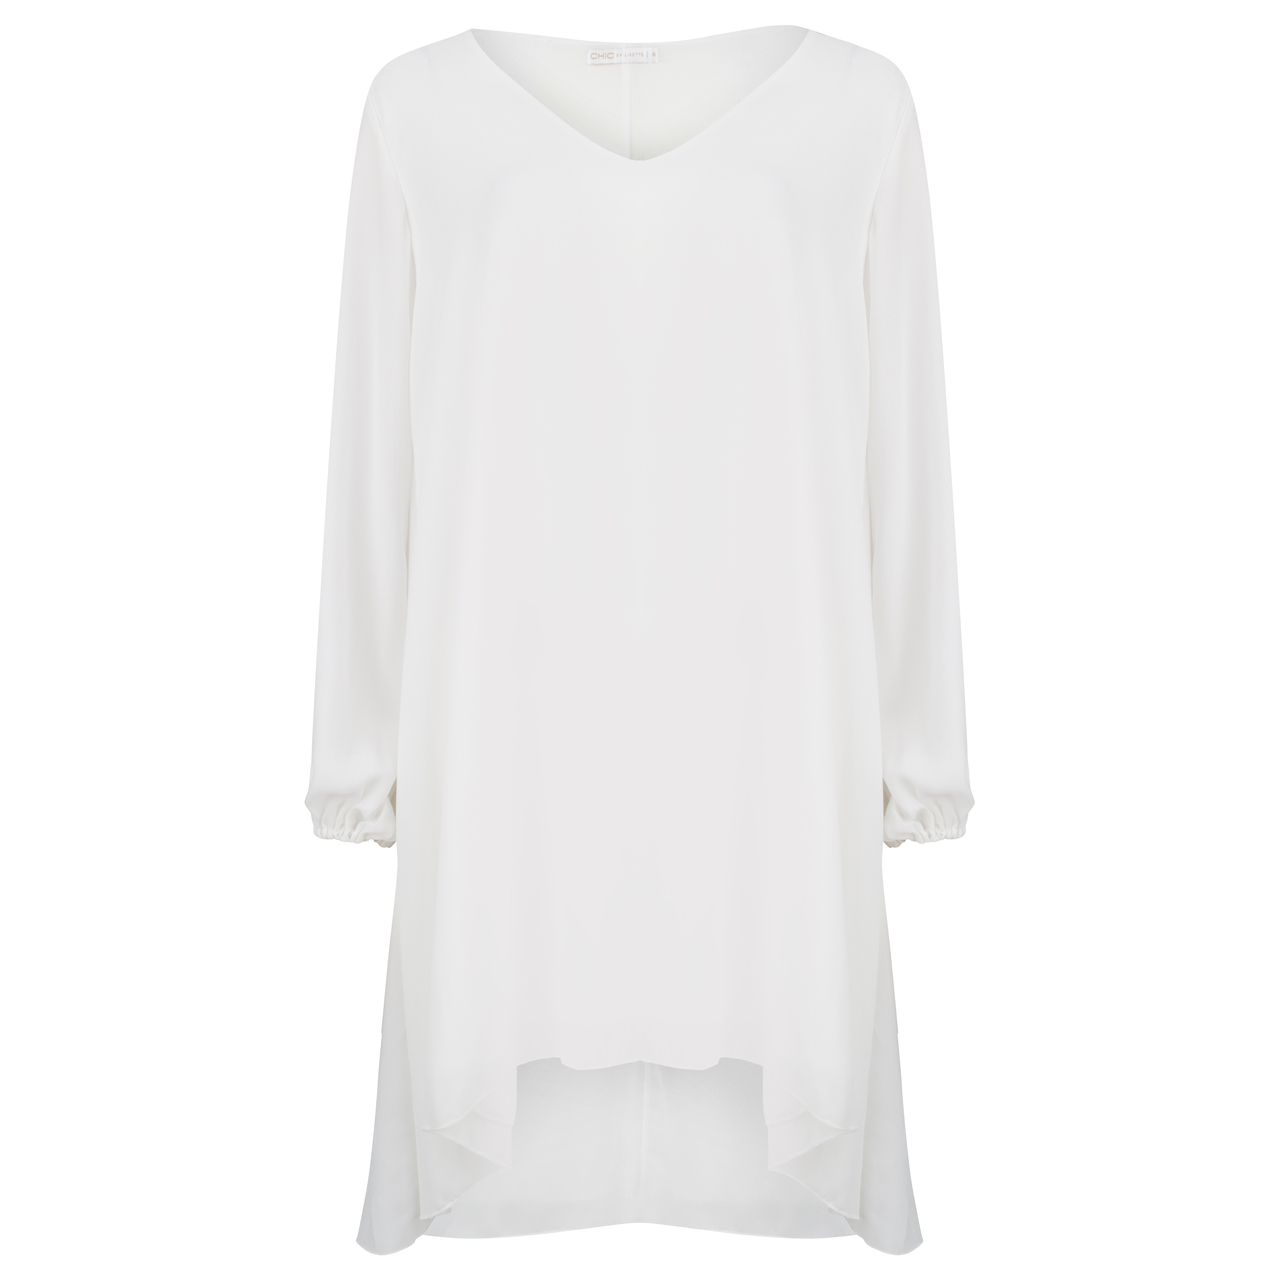 Chic by Lirette -Cover up Avalon White